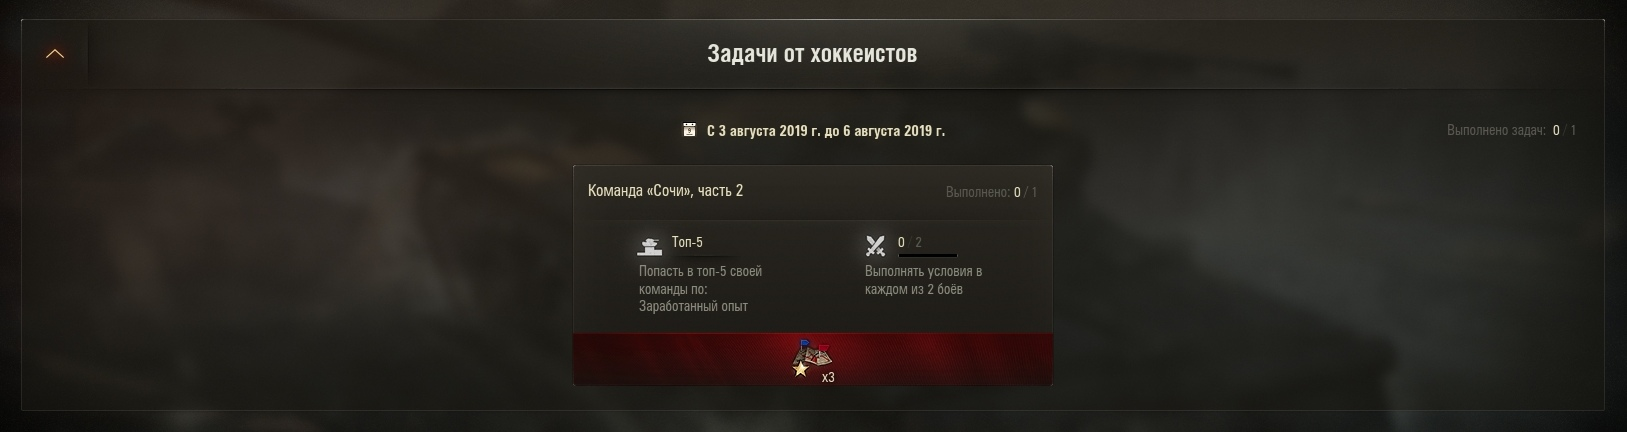 бонус код для world of tanks на 14 сентября